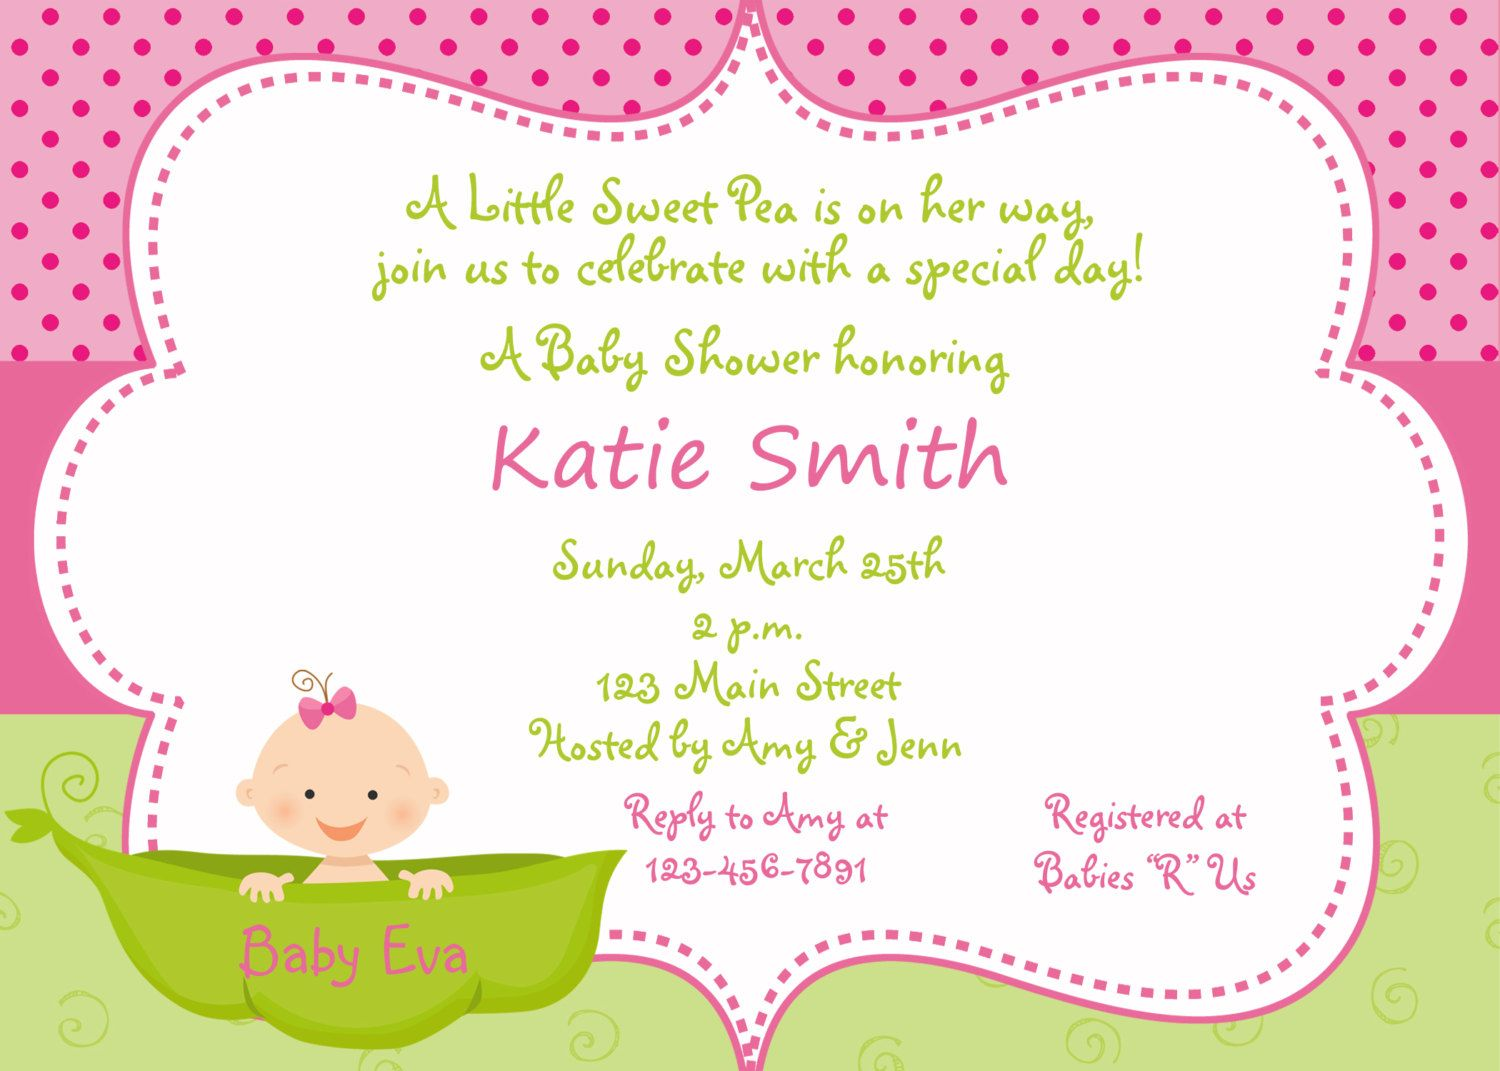 Twins Baby Shower   Pea In A Pod Baby Shower Invitation   Sweet Pea Pink  And Green Baby Girl Shower Invitation    You Print Or I Print